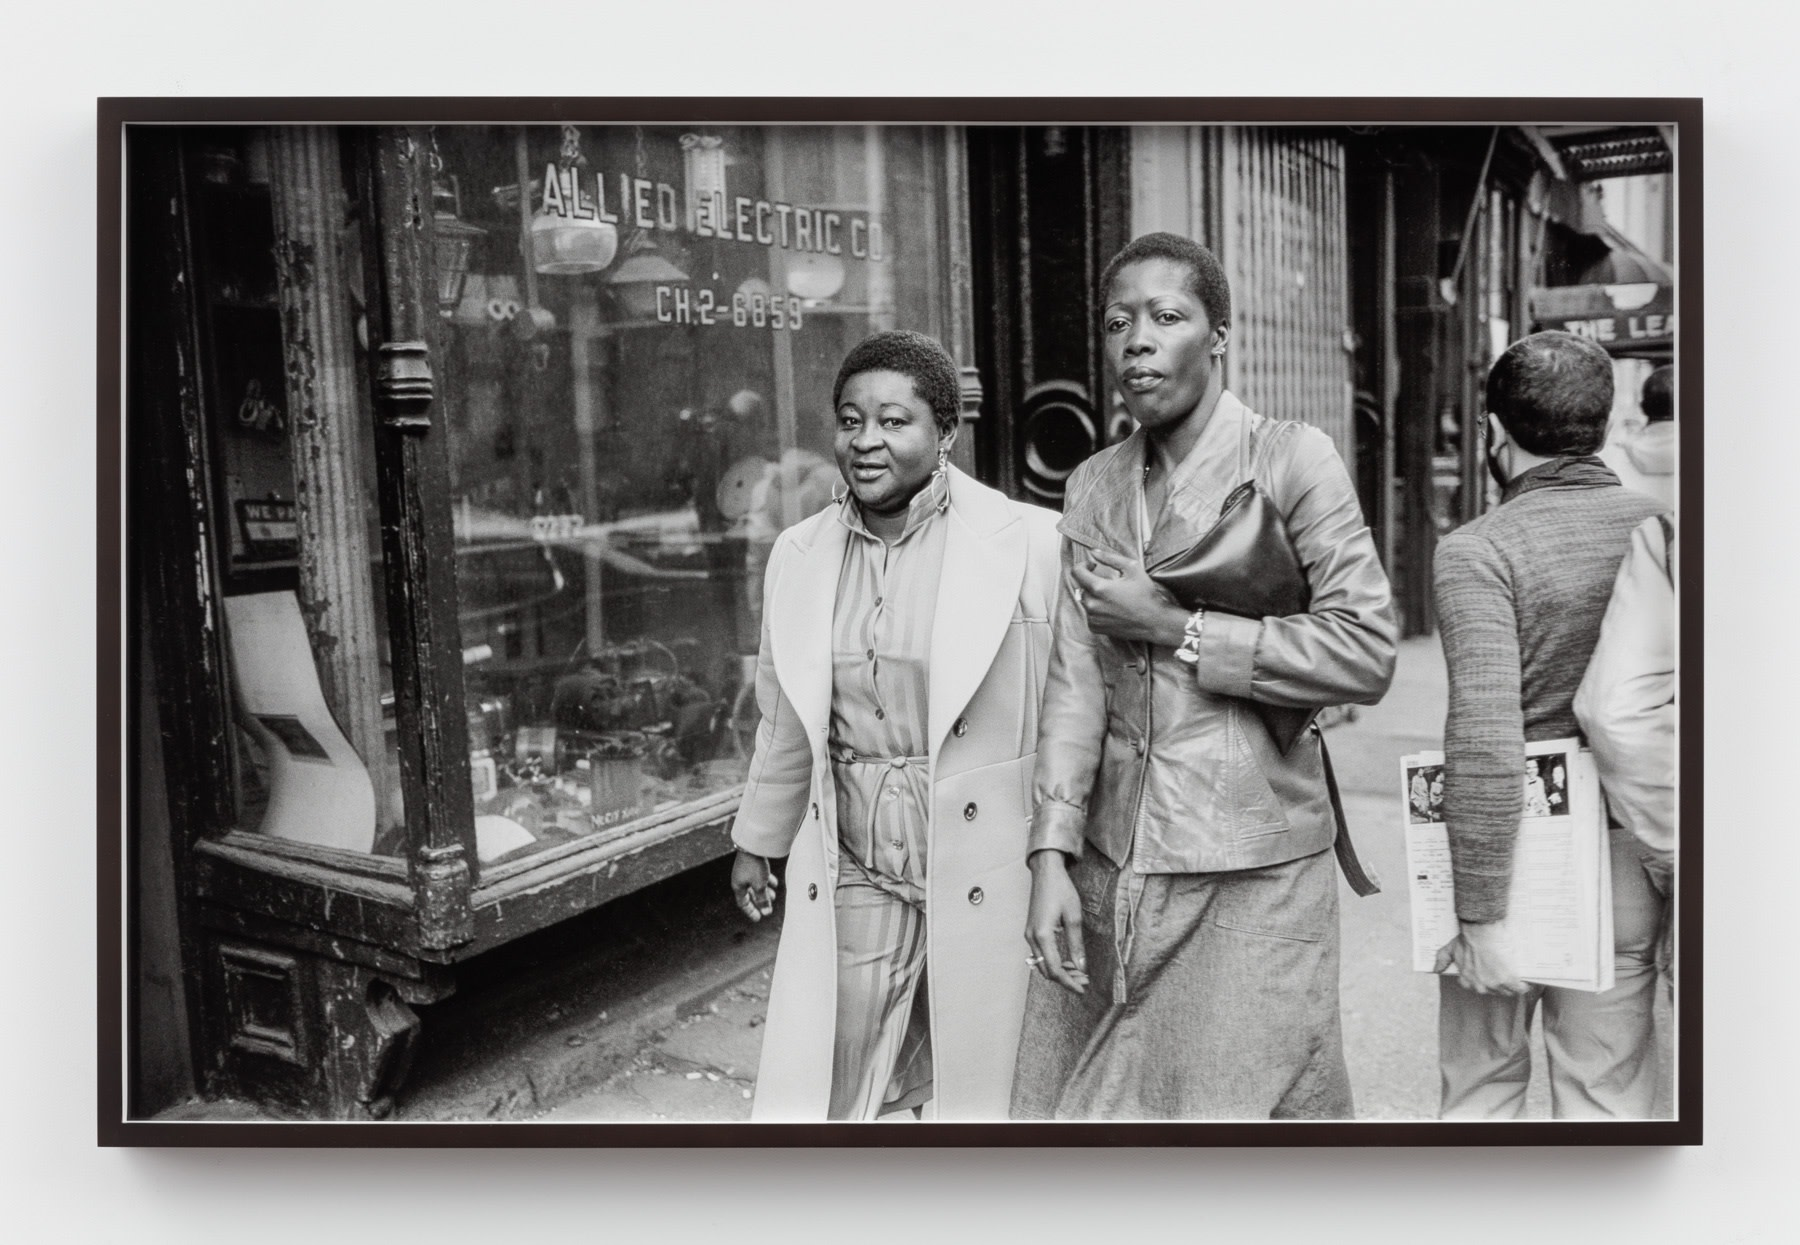 Sunil Gupta, Untitled #50 from the series Christopher Street, 1976/2019, Silver gelatin print, 59 x 91.7 cm, 23 1/4 x 36 1/8 in, Framed: 61.1 x 93.7 cm, 24 1/8 x 36 7/8 in, Edition of 5 plus 1 artist's proof